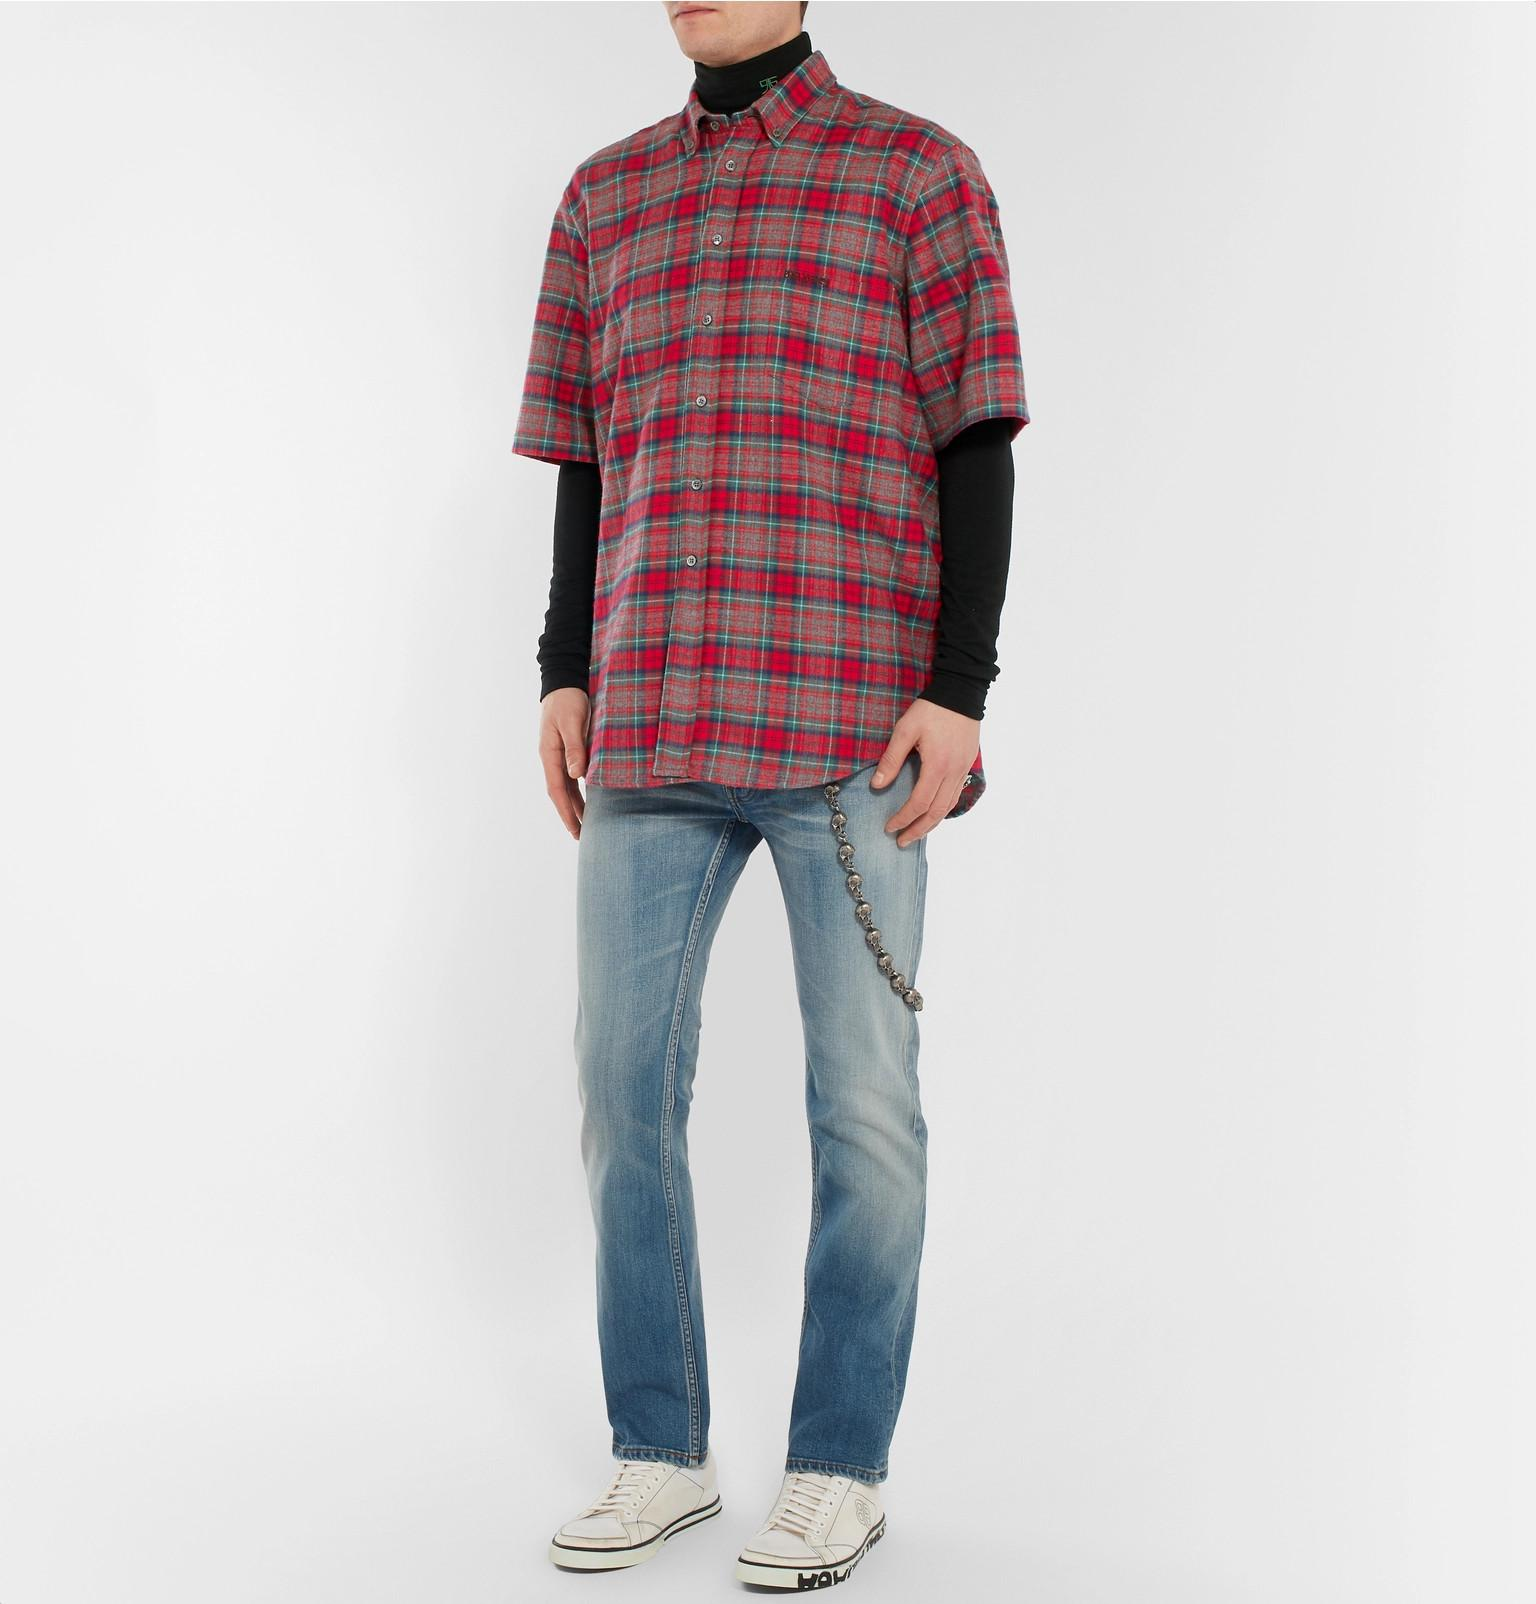 238626accabbf2 vetements-red-Oversized-Button-down-Collar-Checked-Cotton-flannel-Shirt.jpeg